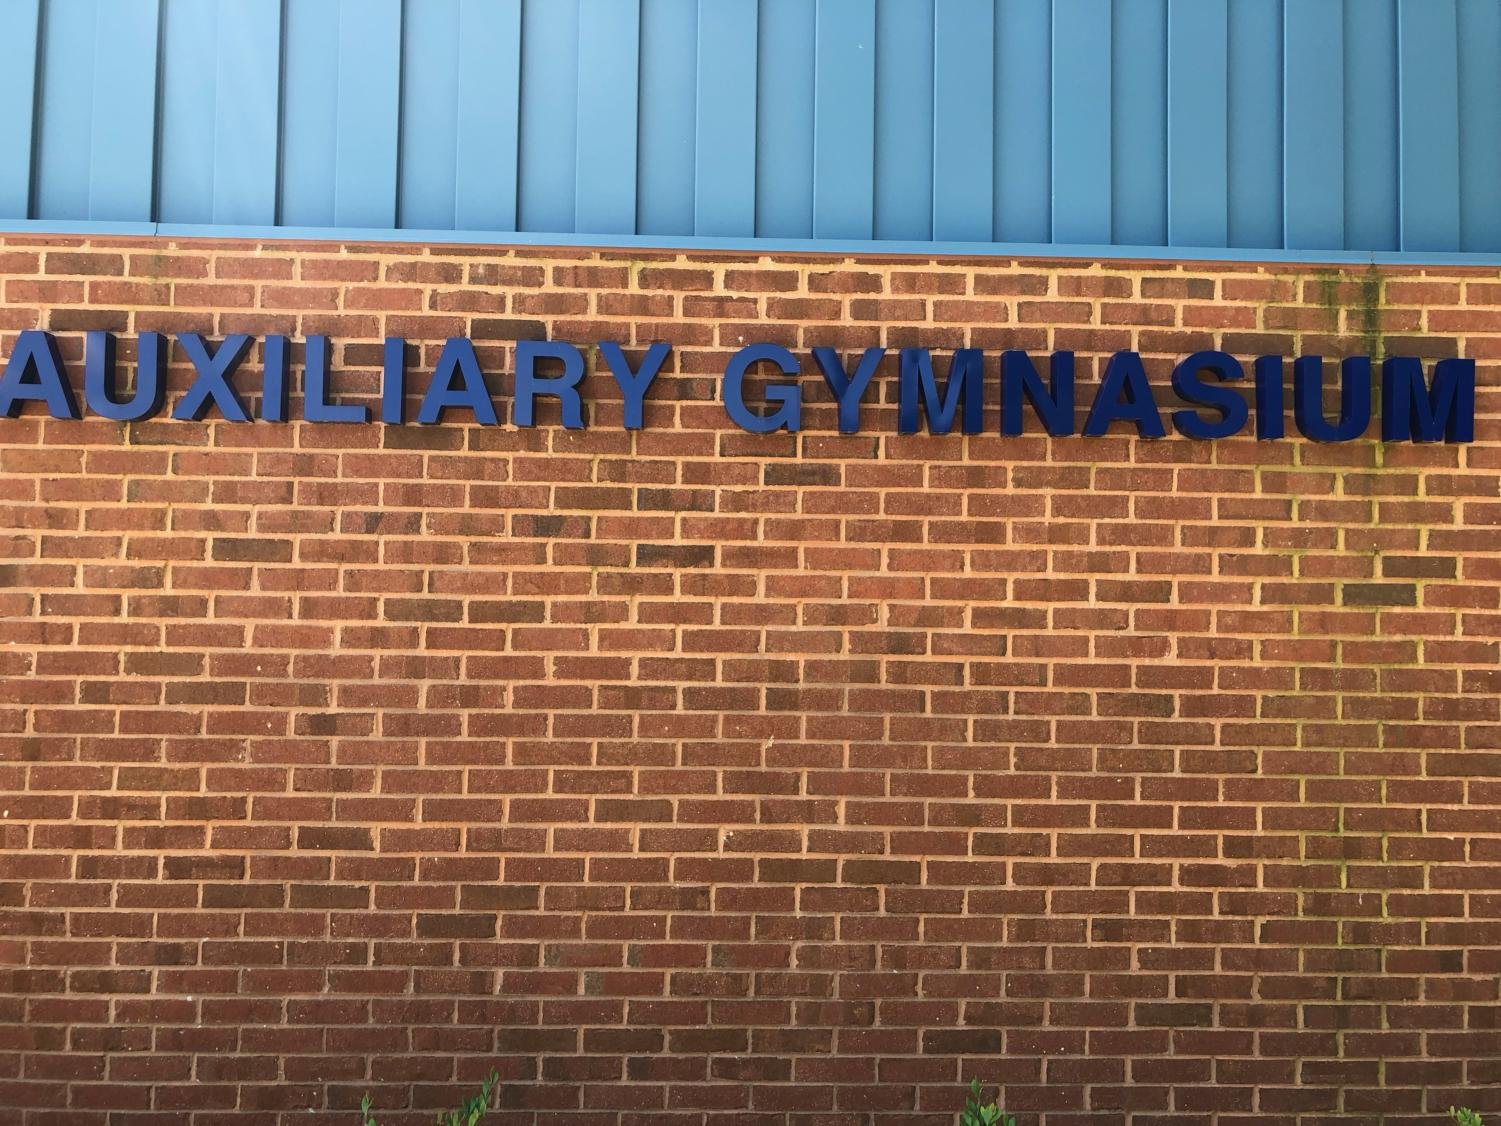 The+Aux+Gym+has+been+sought+after+for+many+years+by+the+Lafayette+community.+Lafayette+was+the+last+of+the+WJCC+High+schools+to+get+a+secondary+gym.+This+gym+is+possibly+the+largest+legacy+left+by+Dr.+Holloman.